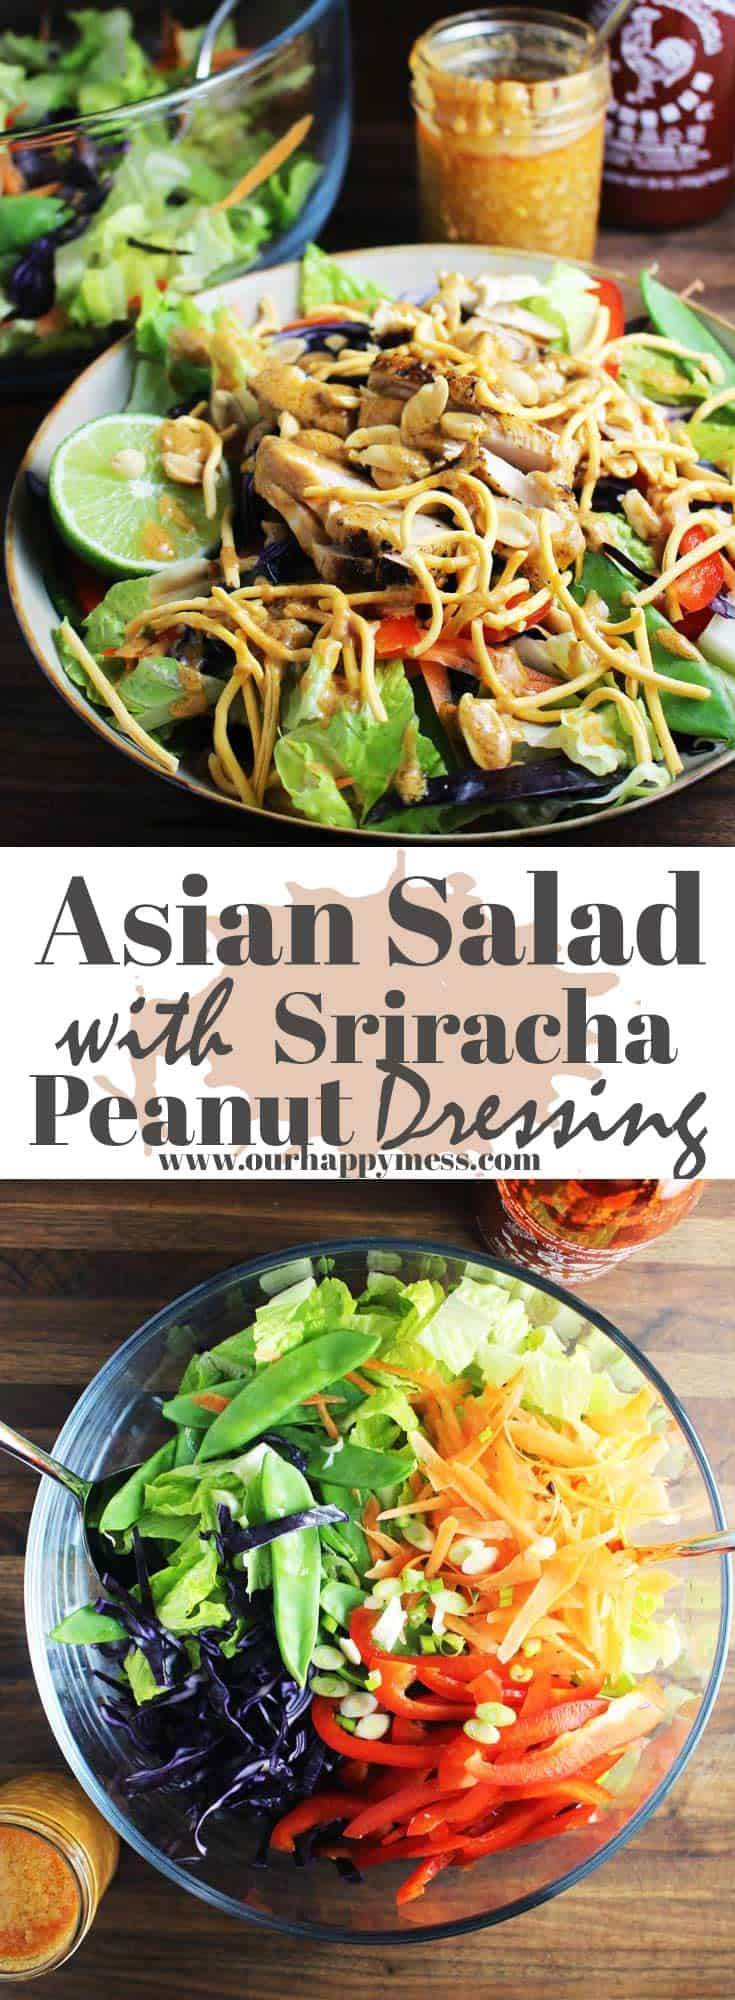 This Asian Chicken salad is full of rainbow-colored, crunchy veggies, and is tossed with a punchy sriracha peanut dressing. It's quick to assemble and makes a wonderful, fresh, and easy weeknight dinner. #easyrecipes #salad #dinnerrecipes #dinner